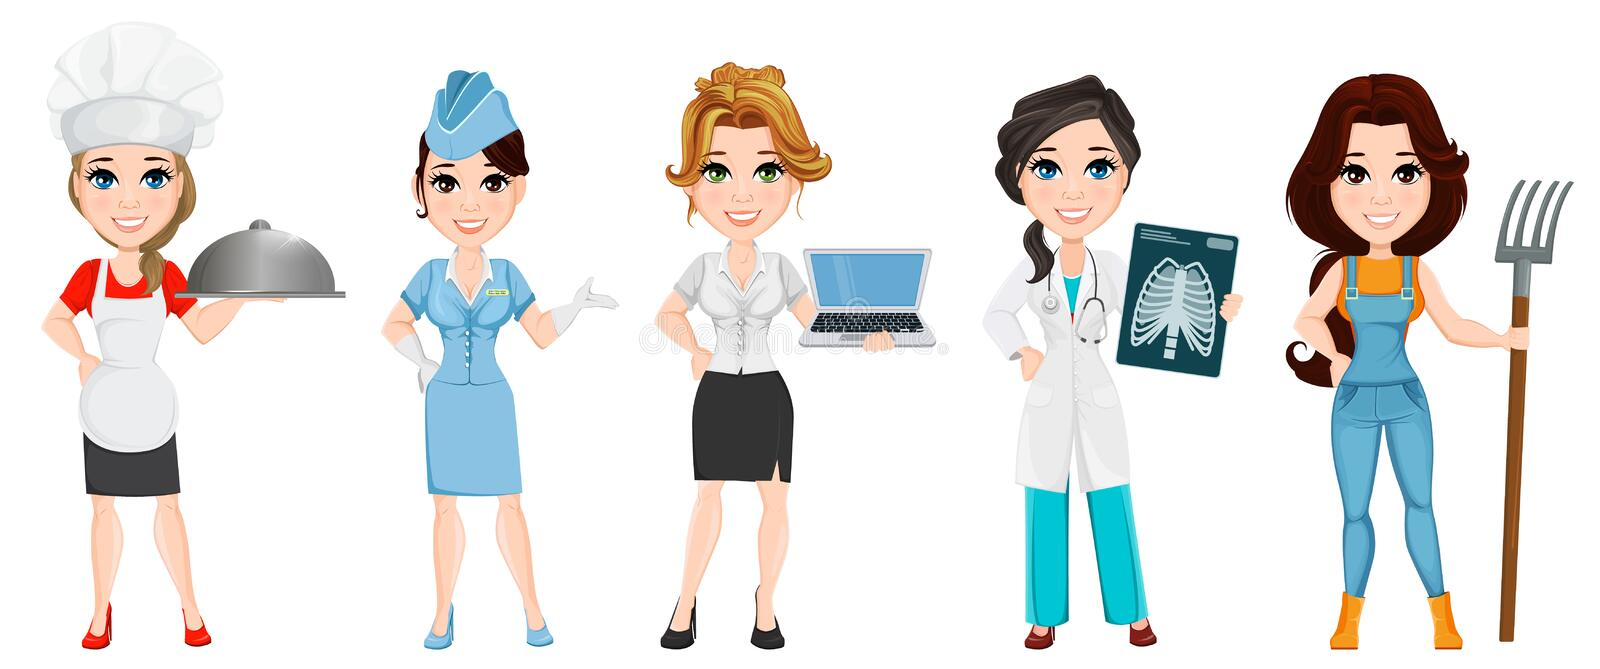 Professions. Set of female cartoon characters. Chef, stewardess, business woman, medical doctor and farmer vector illustration